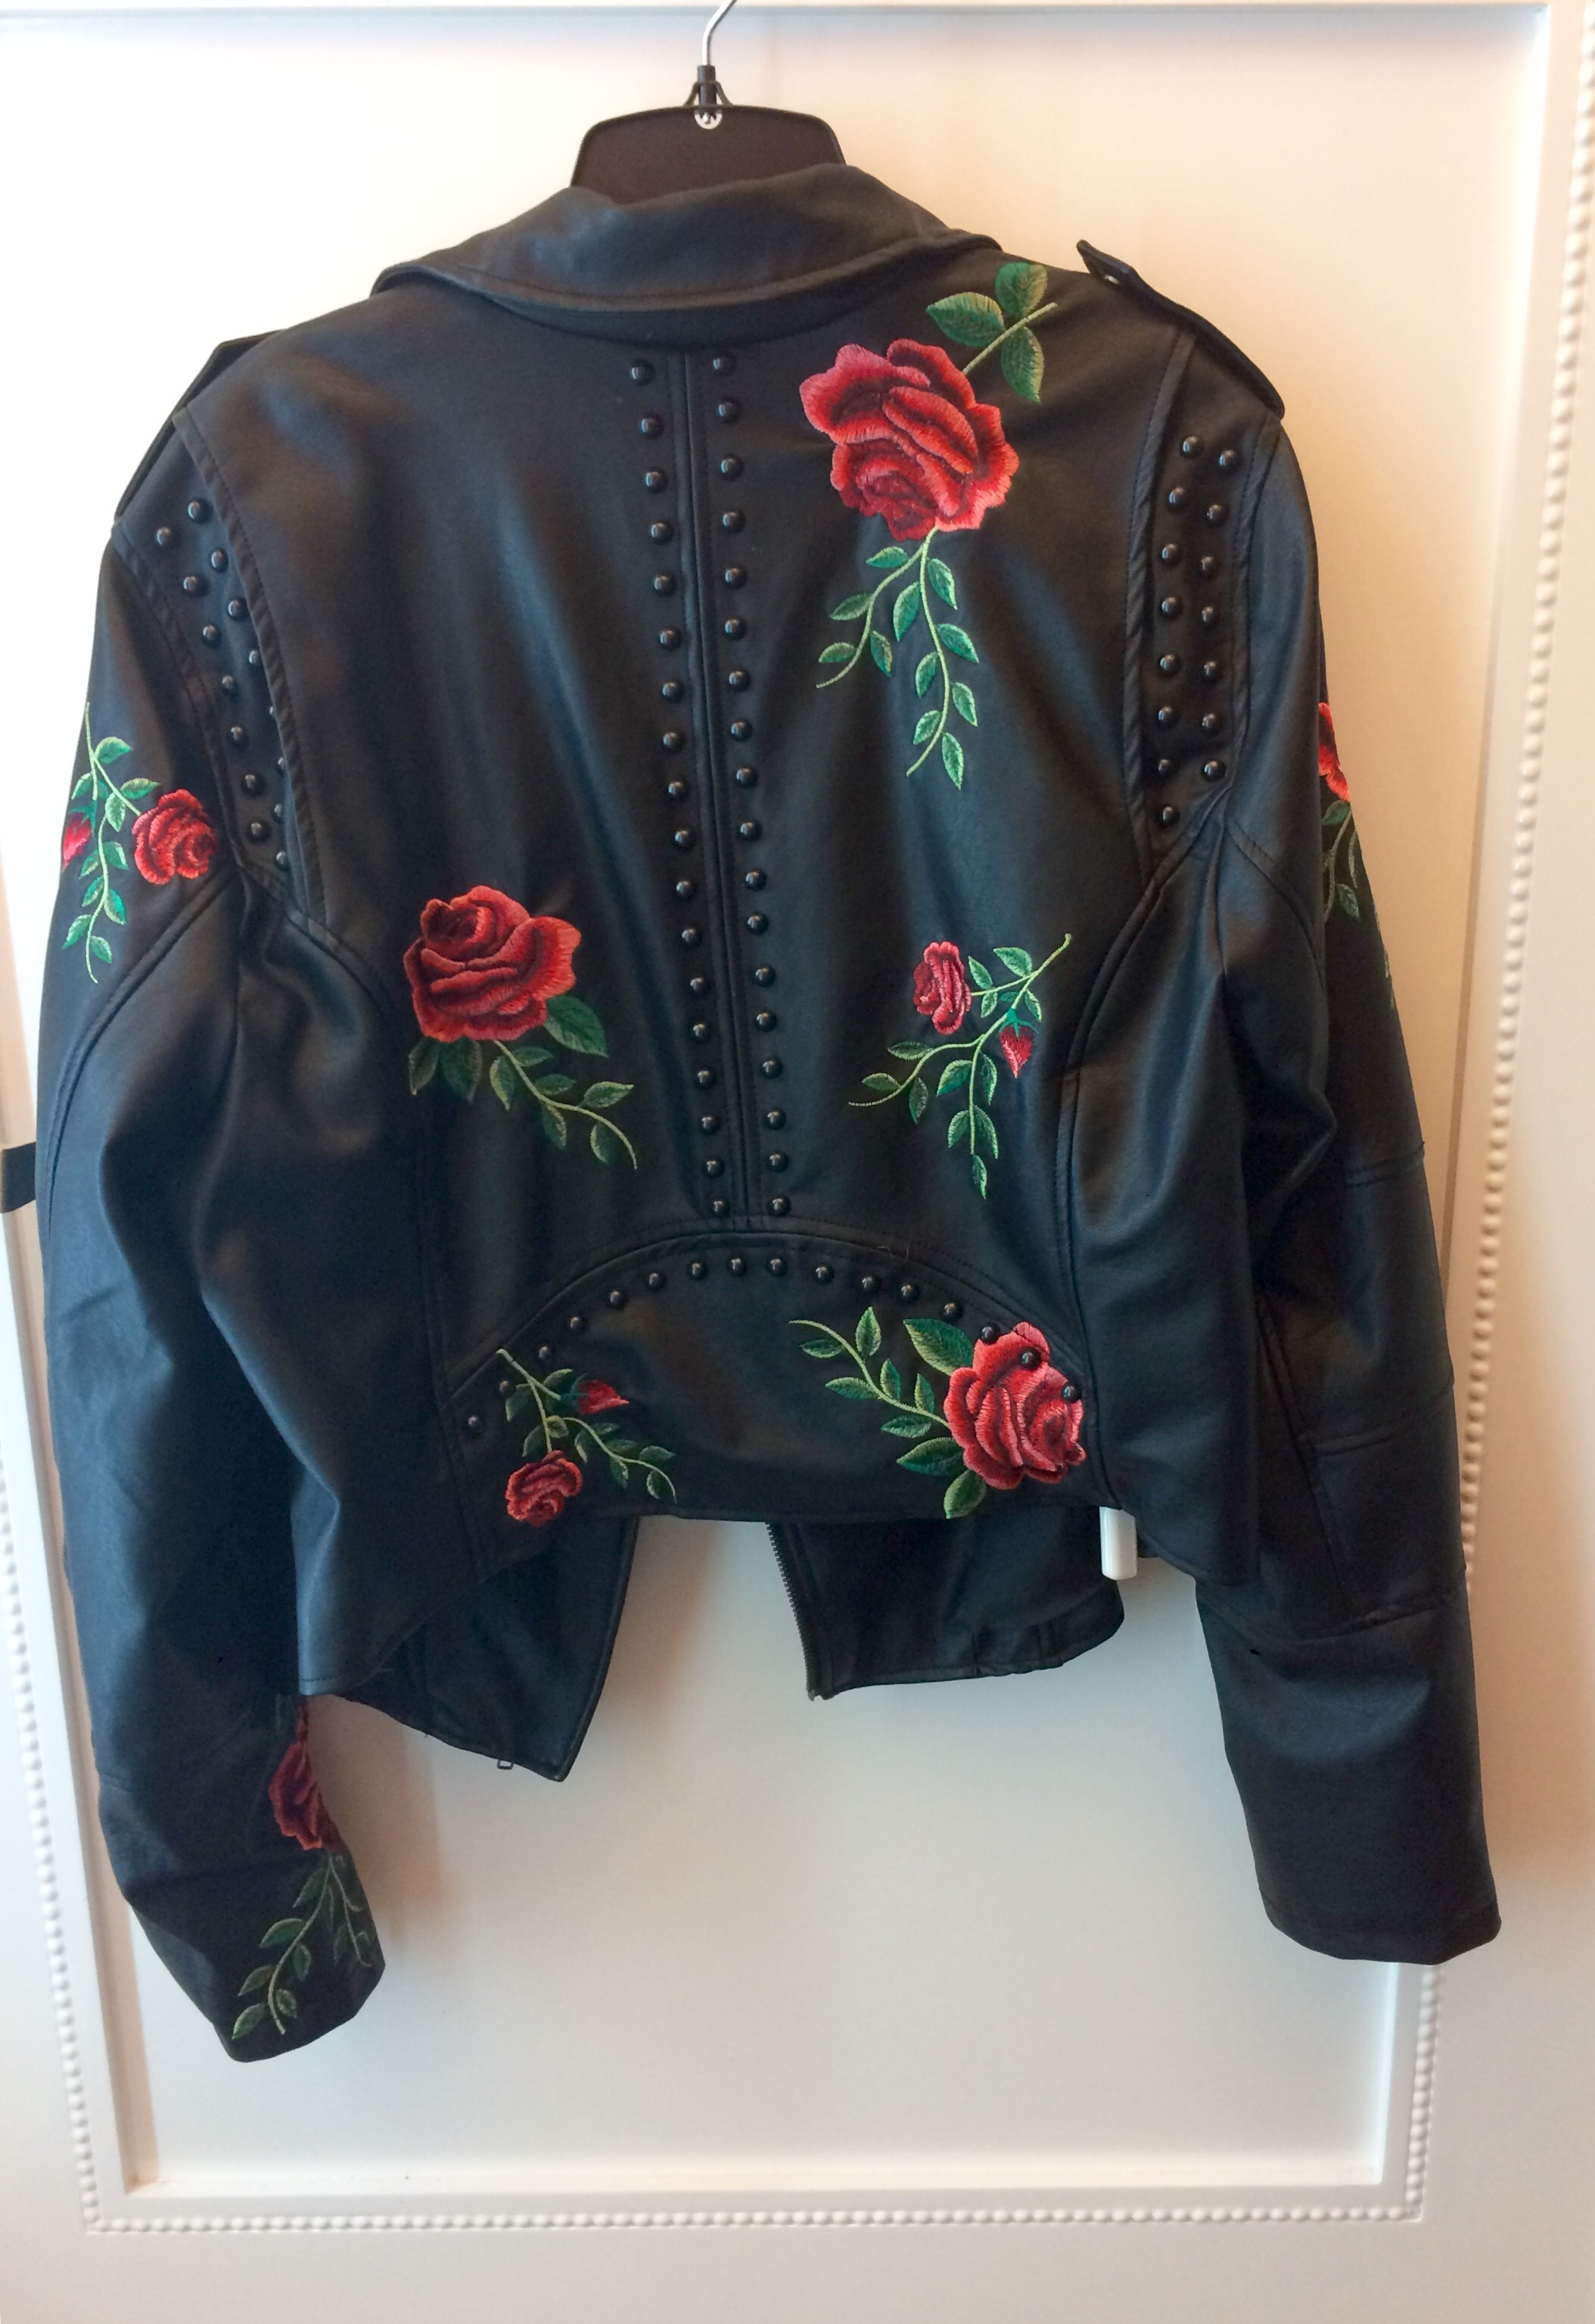 2d0ea3229b536 This next jacket was in the clearance section when I last went. I d seen if  before and even tried it on a few months back but something about it just  didn t ...